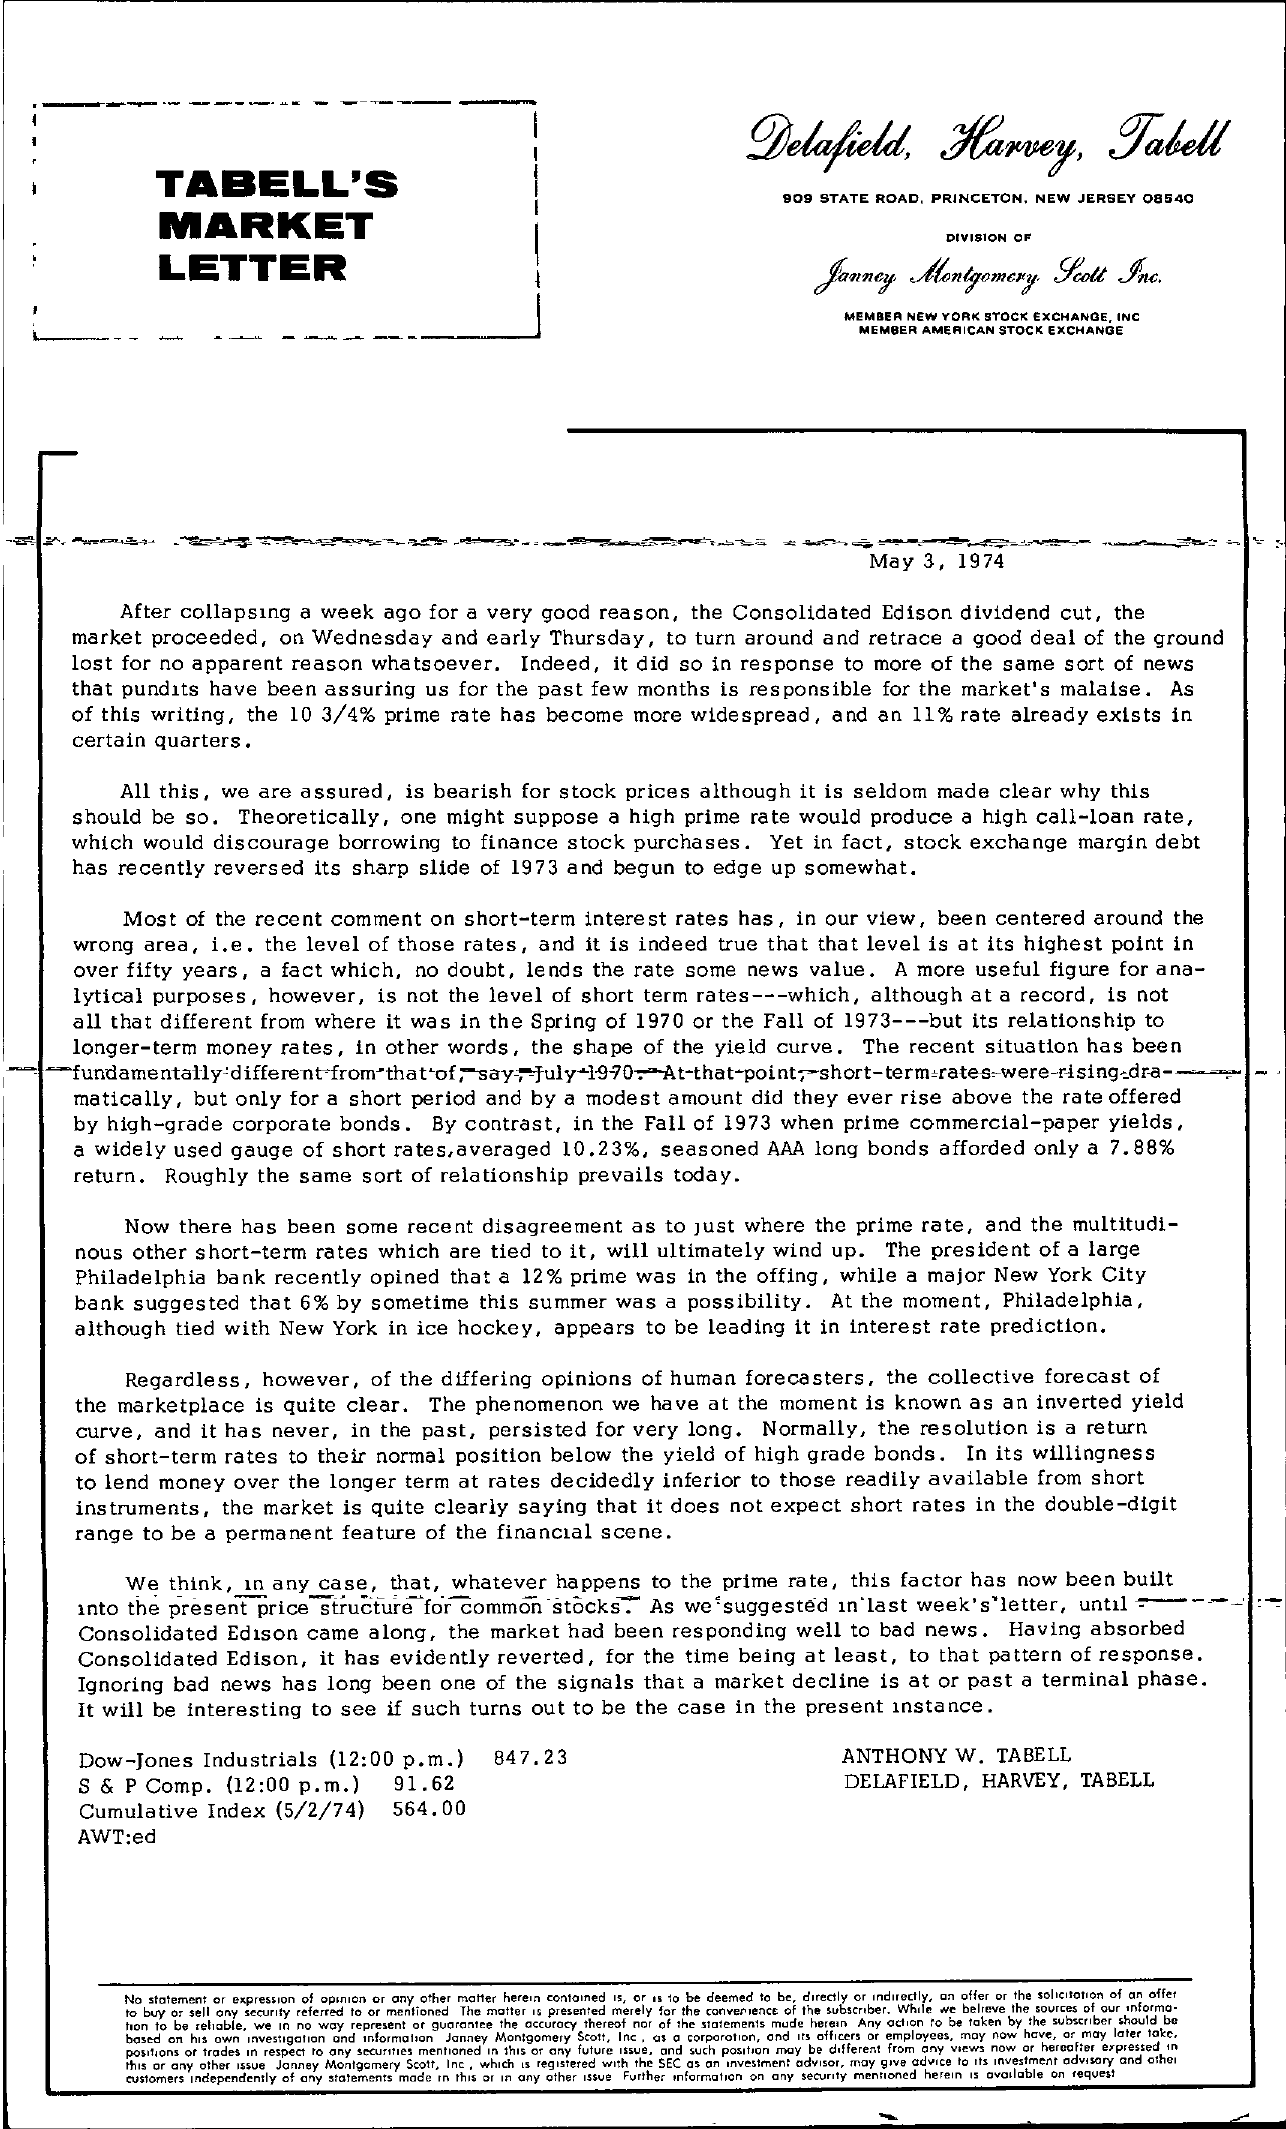 Tabell's Market Letter - May 03, 1974